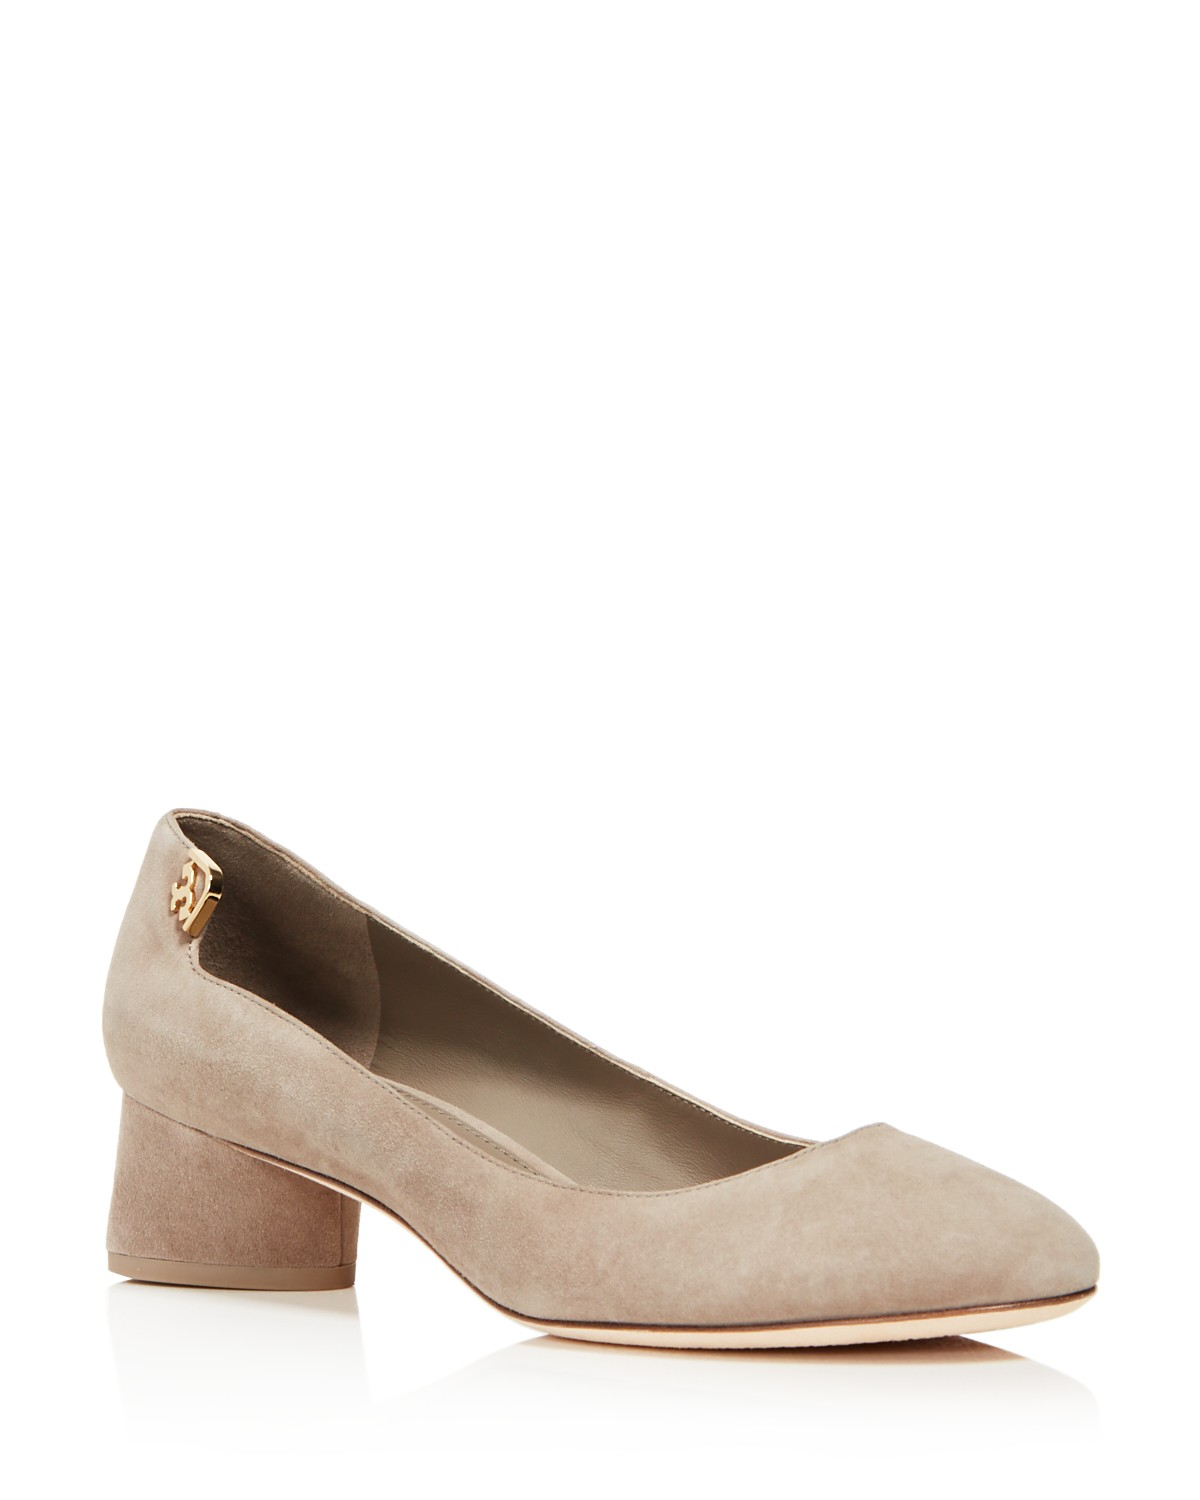 Tory Burch Women's Elizabeth Leather Pumps AHYvbo